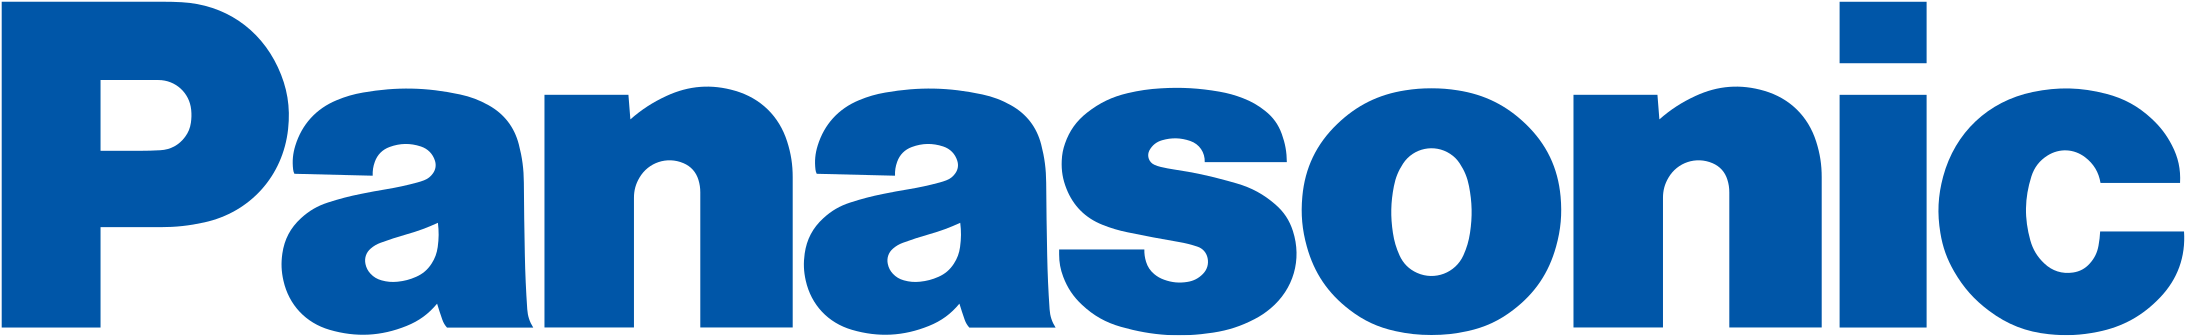 Panasonic Logo Transparent.